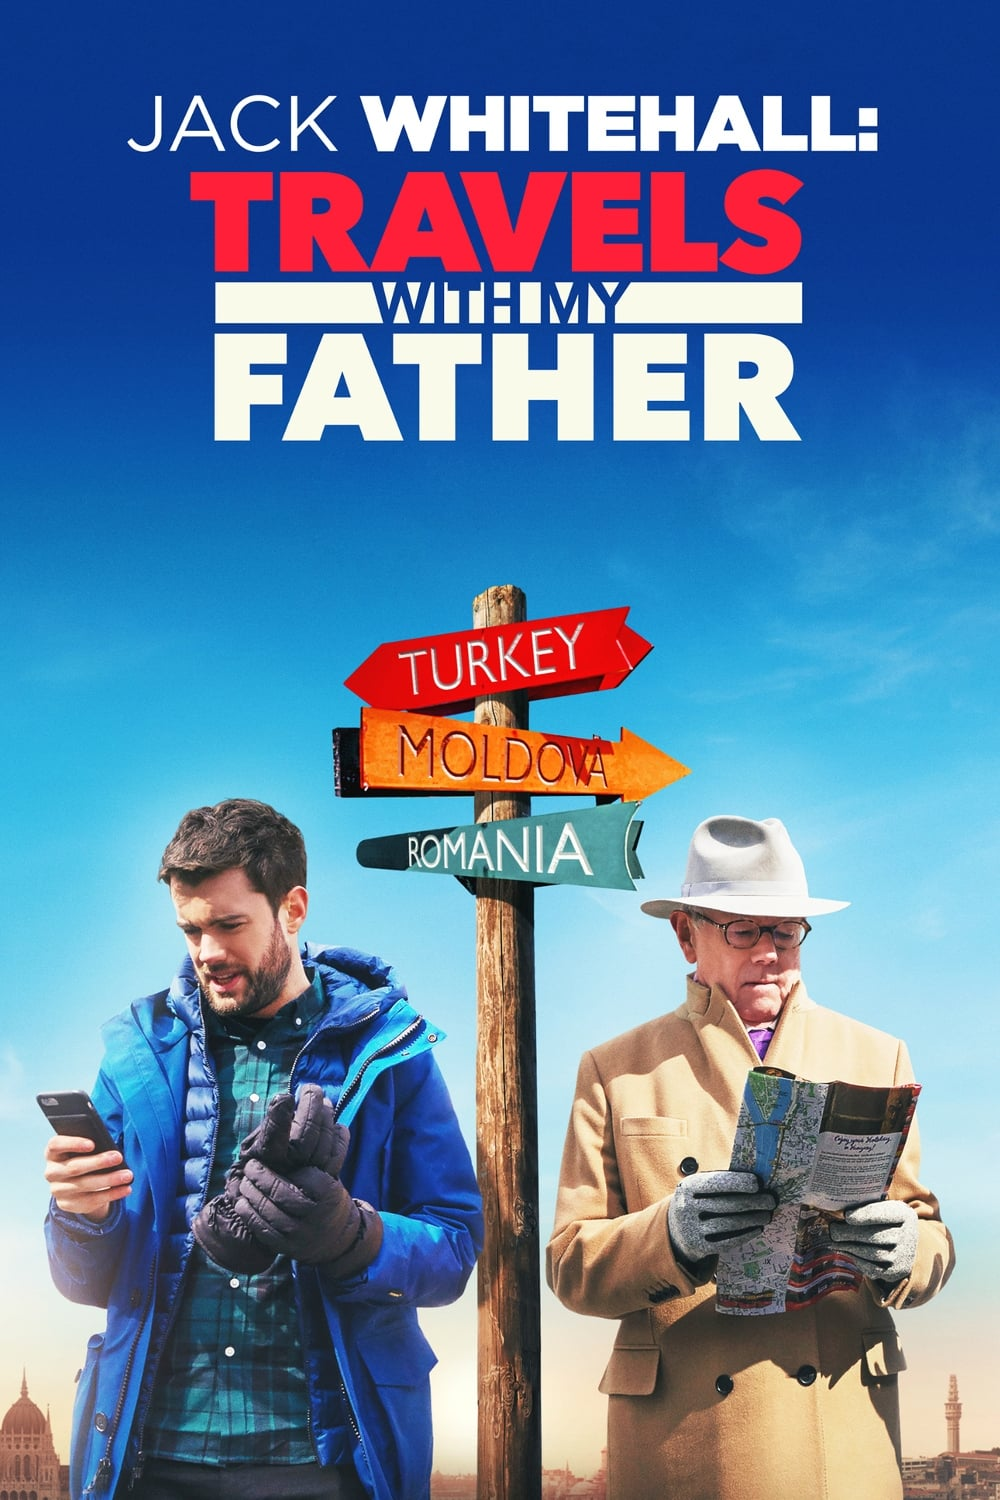 Jack Whitehall: Travels with My Father series tv complet